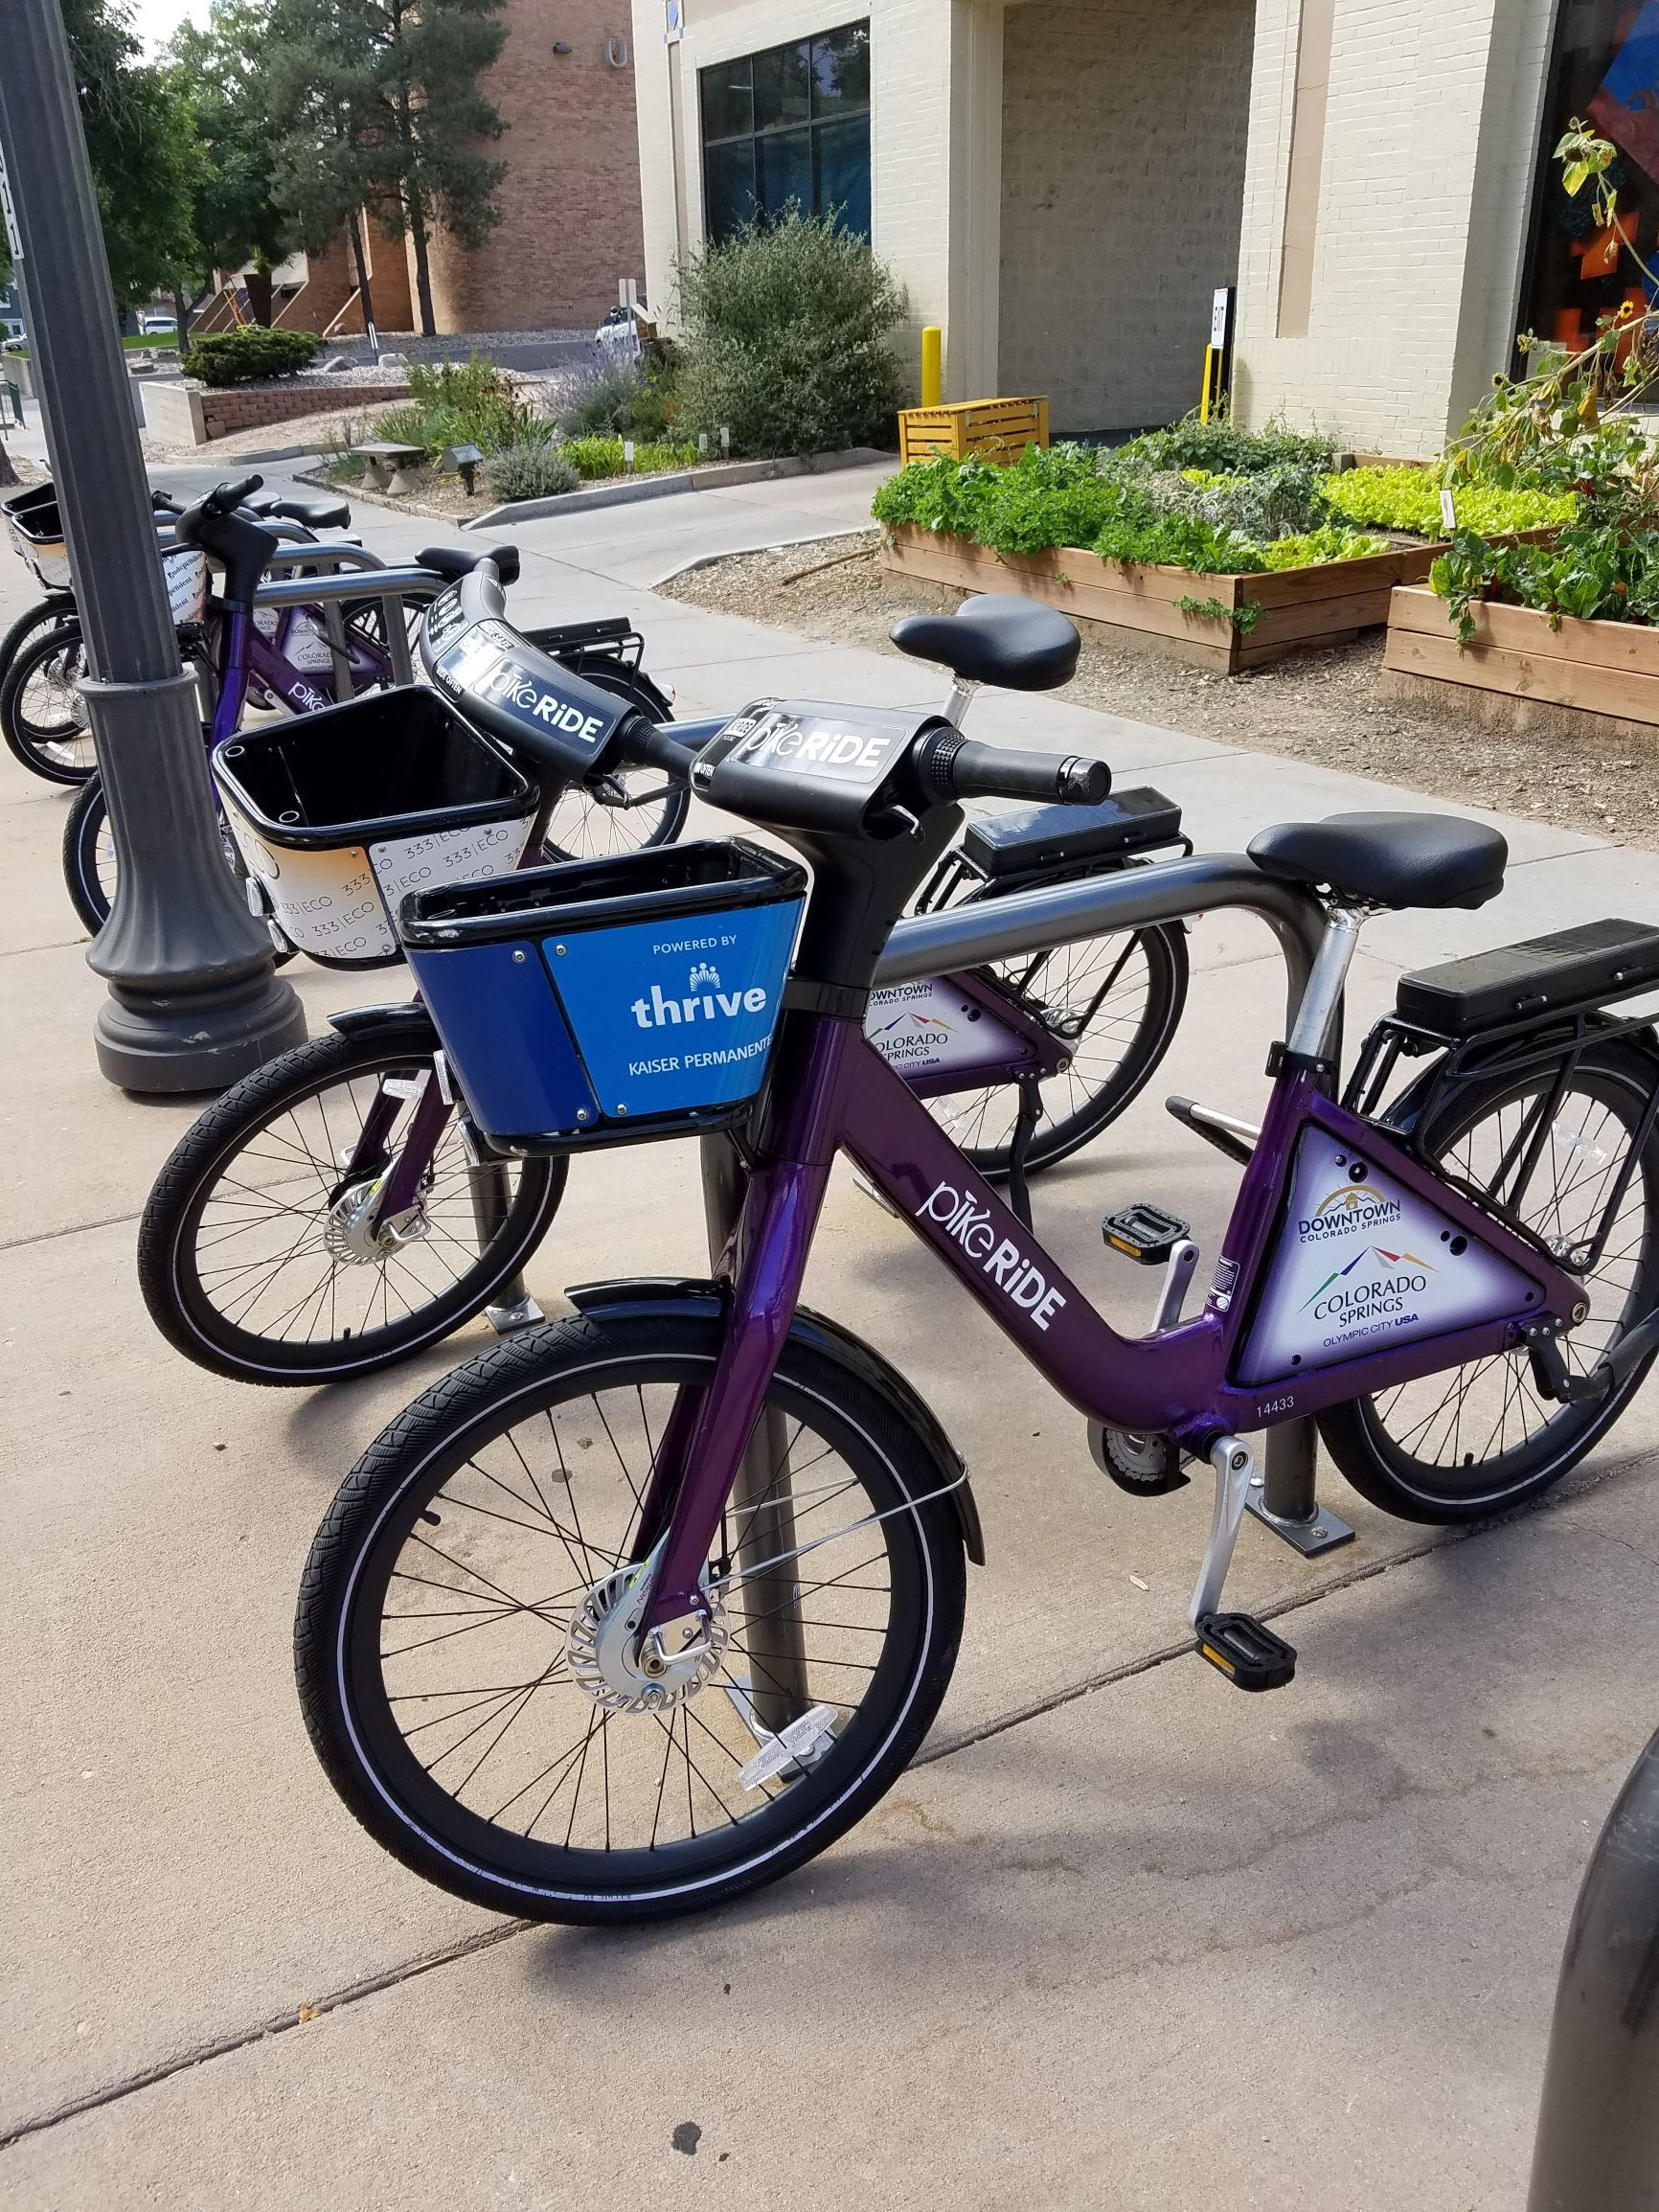 Basket Bikes Connect Students with Downtown Colorado Springs